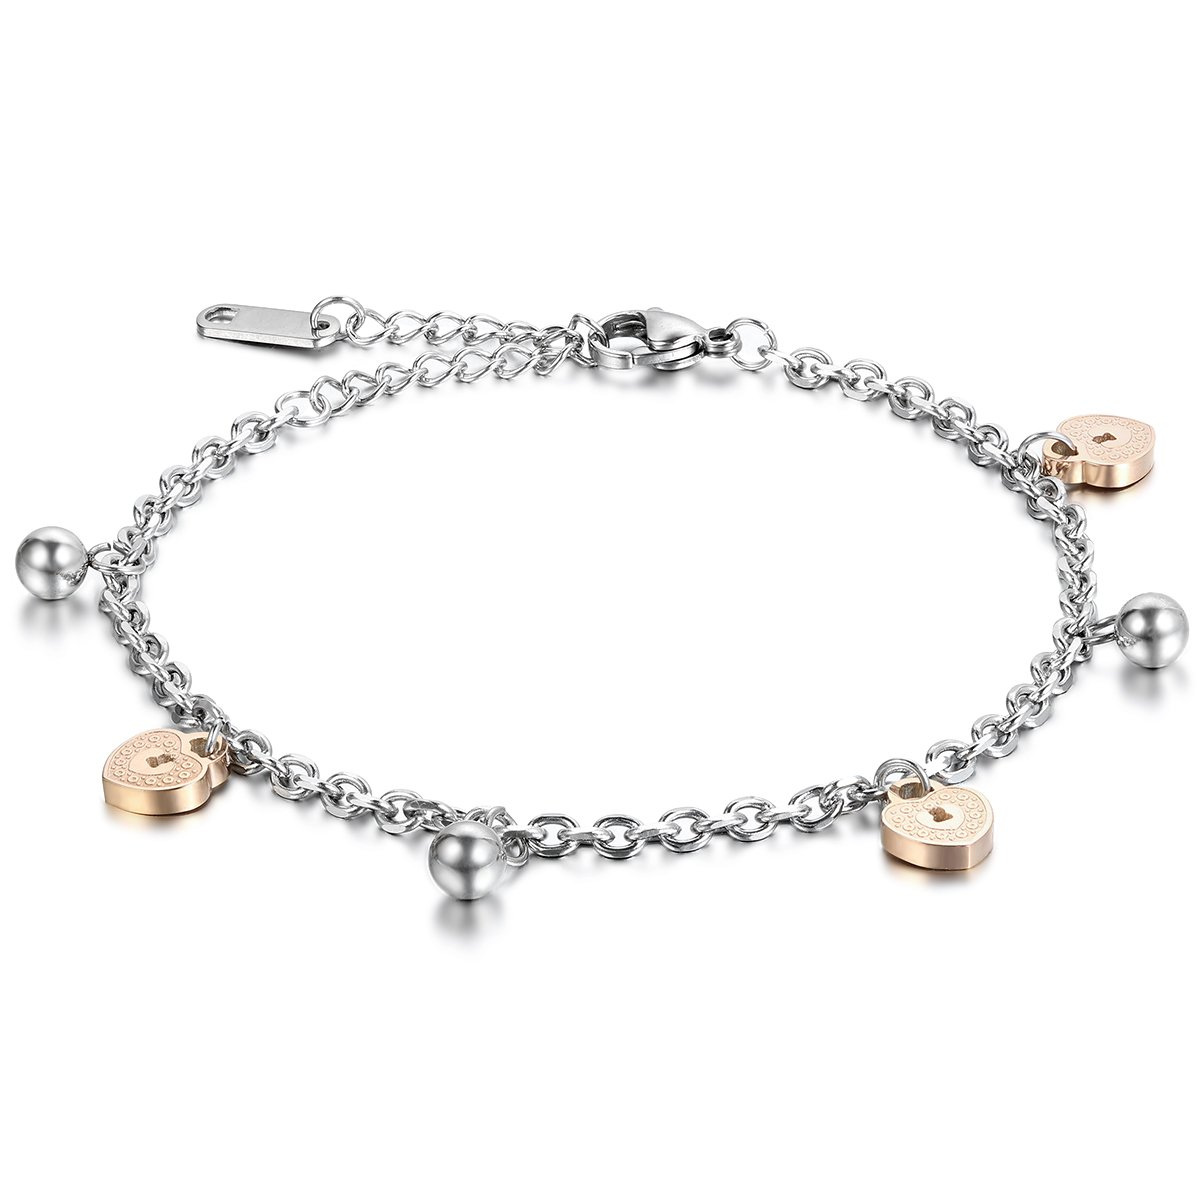 Stainless Steel Heart Lock Bracelet,Cupimatch Women Adjustable RoseGold Plated Chain Charms Bracelet Anklet 9.4 CU-MI-24